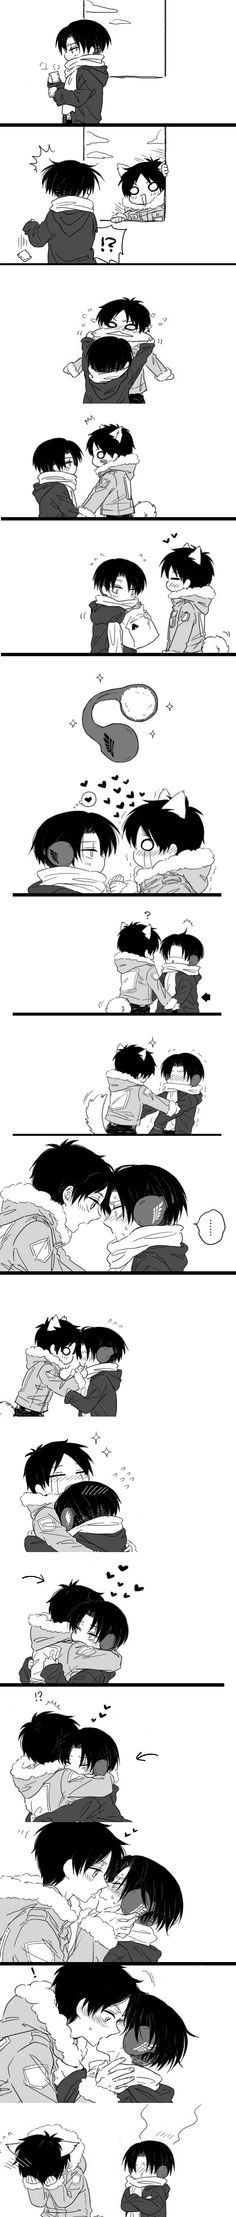 Rivaille (Levi) x Eren Jaeger - SNK Attack on Titan (Yaoi)